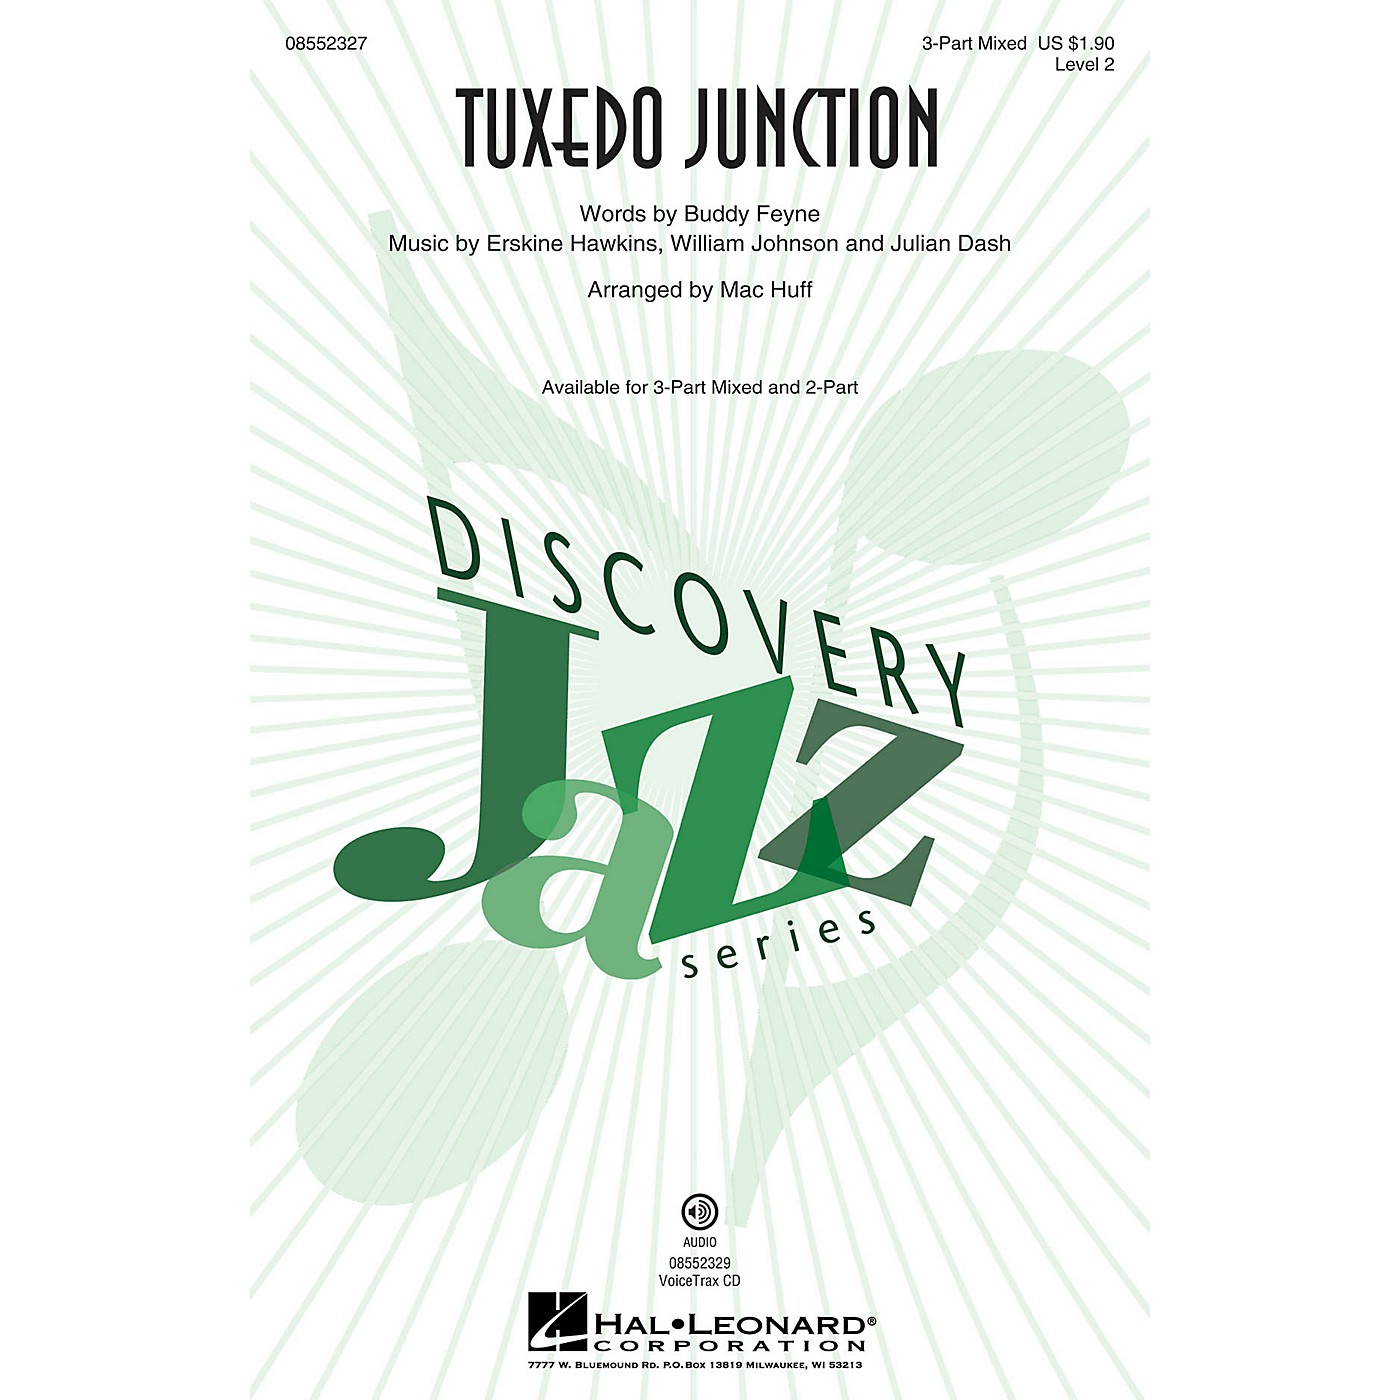 Hal Leonard Tuxedo Junction (Discovery Level 2) 3-Part Mixed by Manhattan Transfer arranged by Mac Huff thumbnail